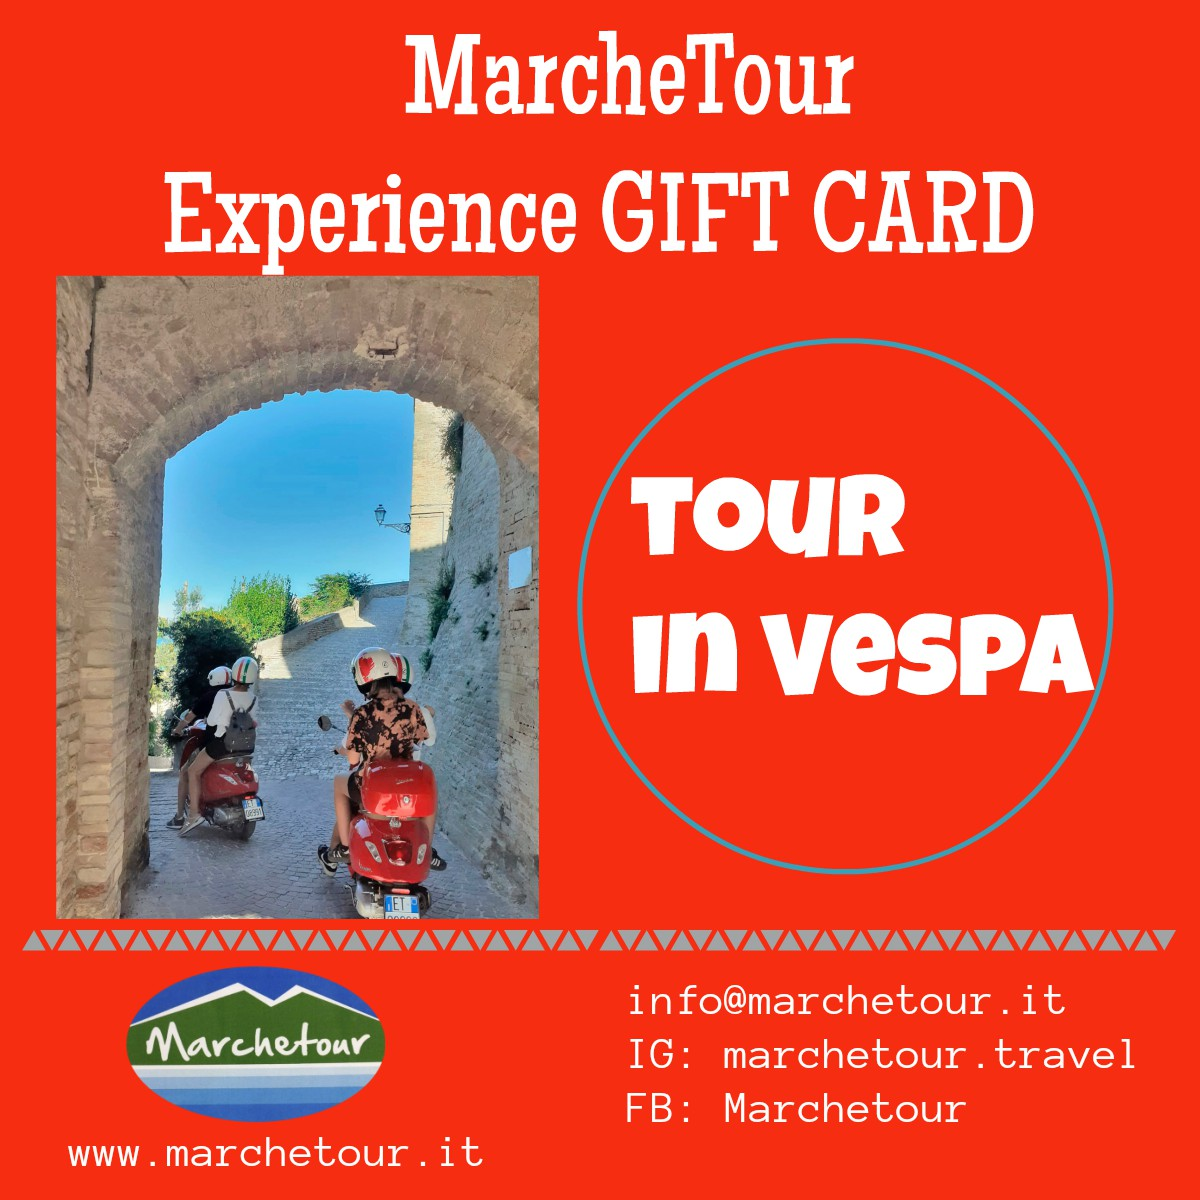 Experience Gift Card: Tour in Vespa